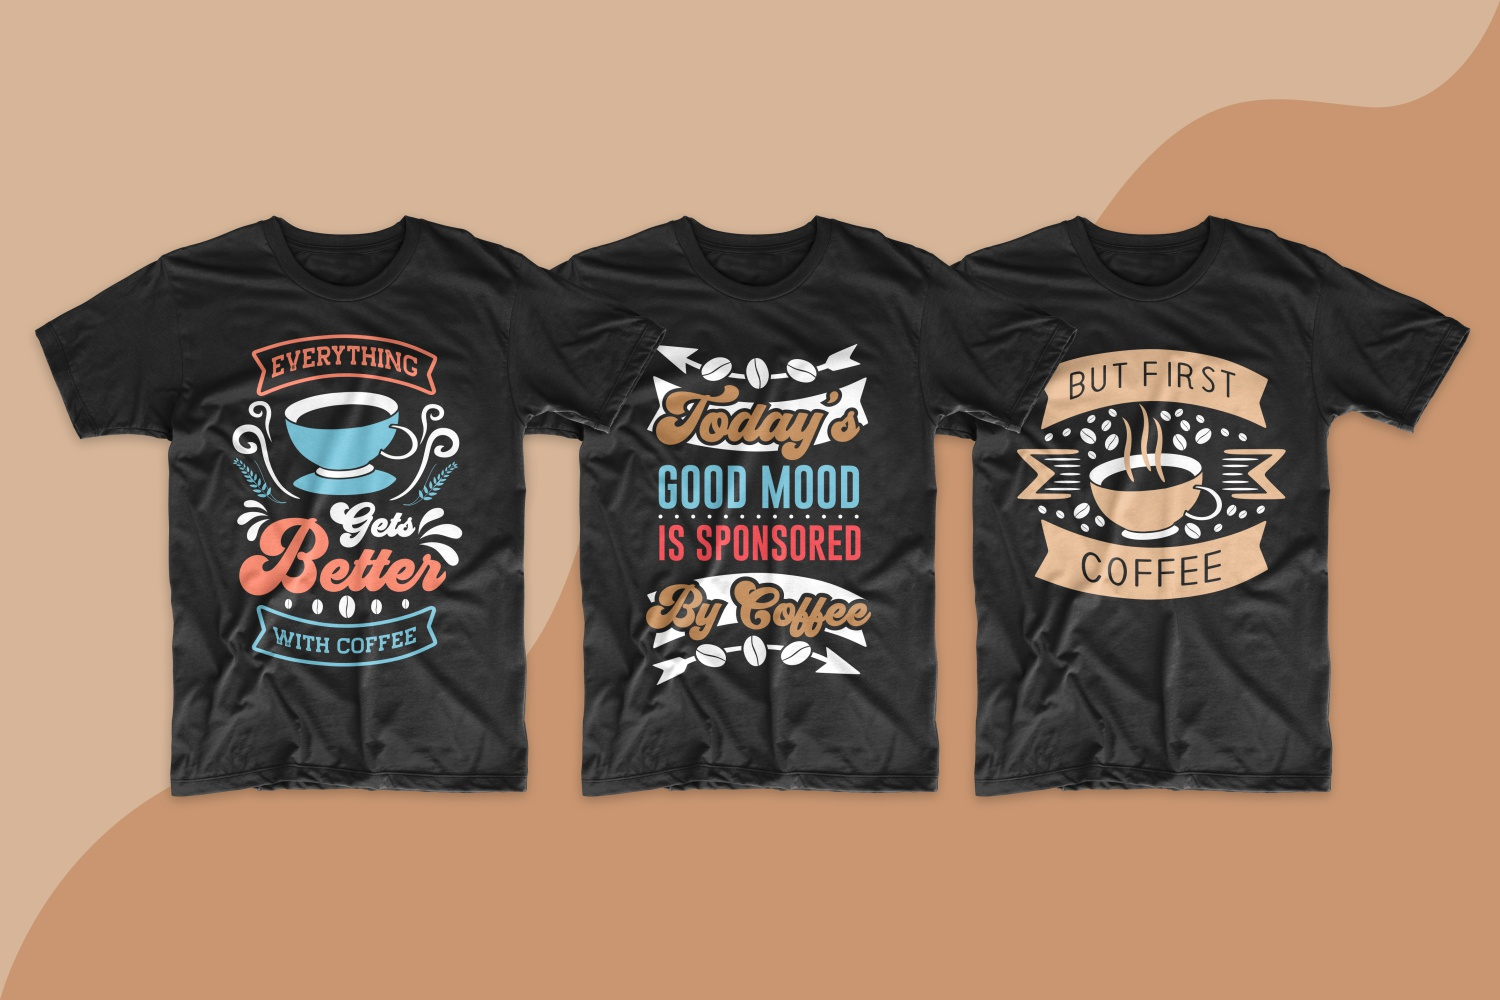 Bright and filled T-shirts with coffee quotes.